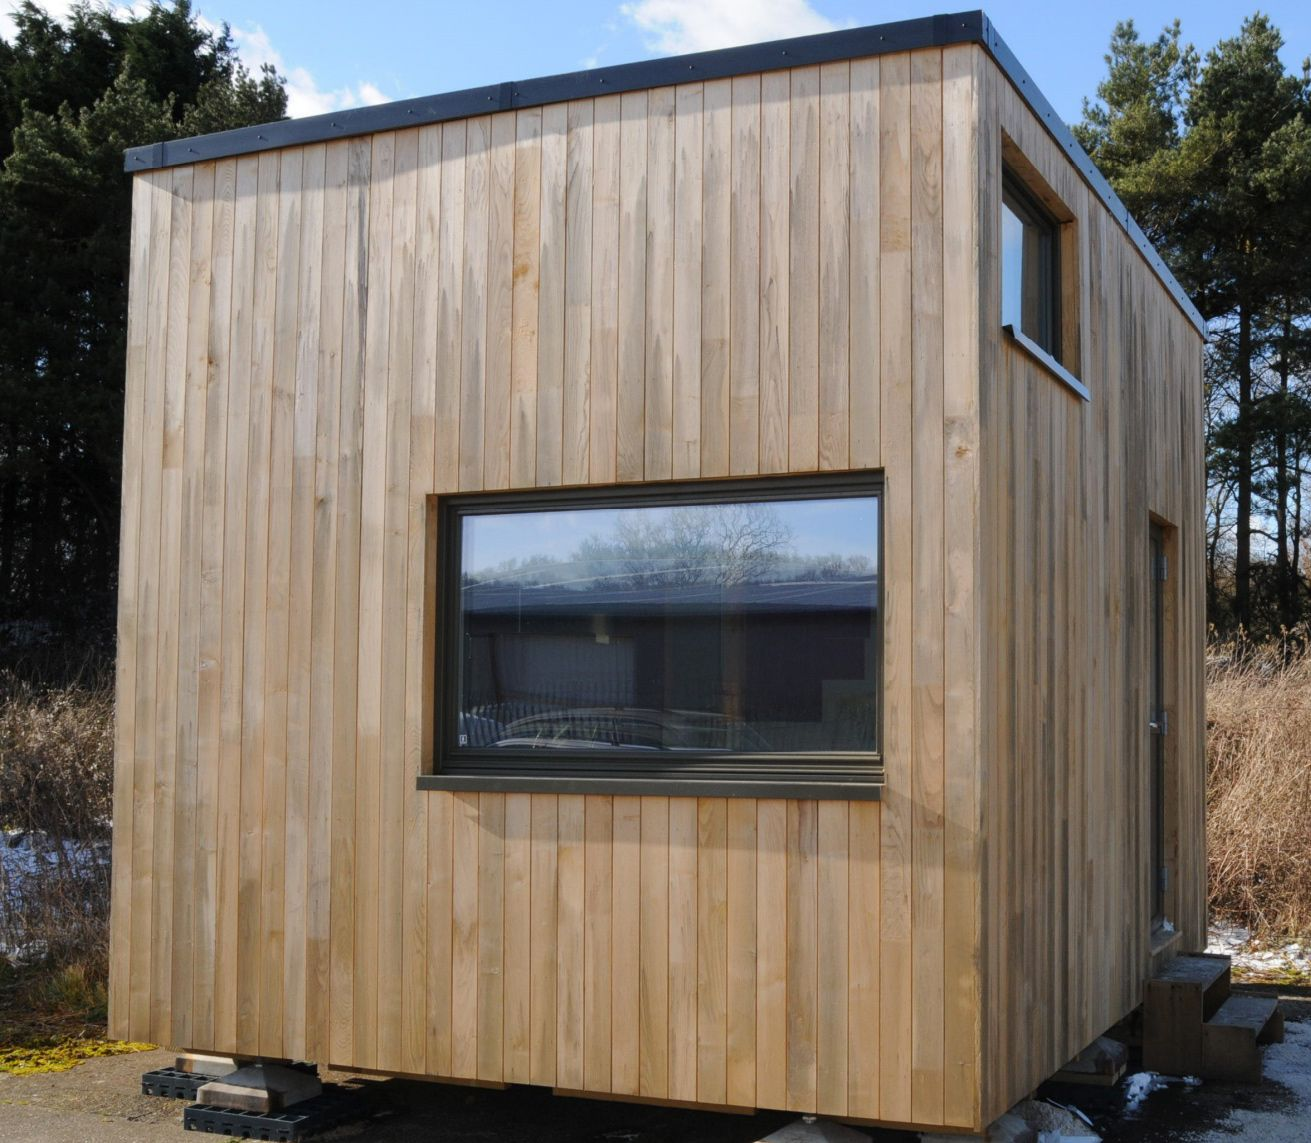 12 tiny homes that prove small is beautiful shed to tiny